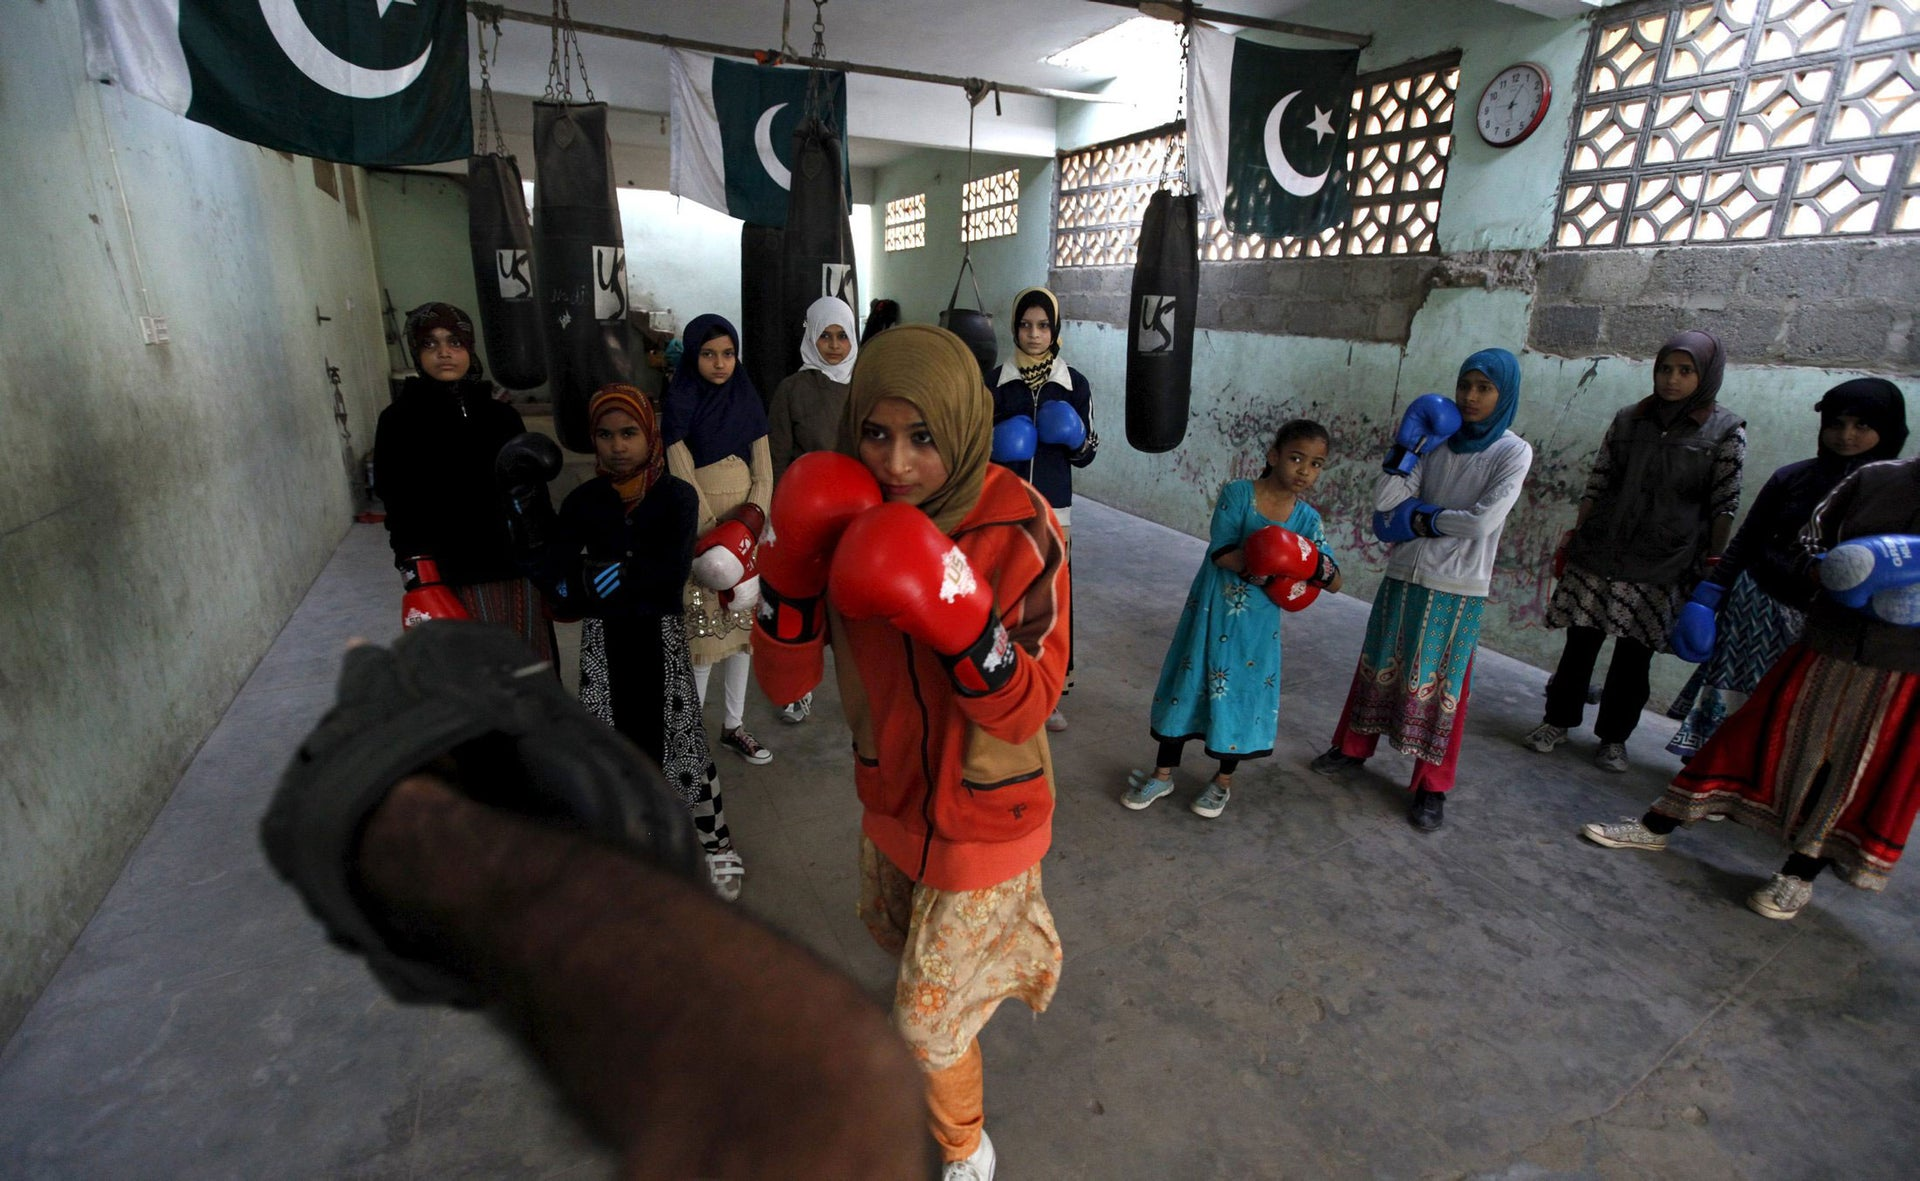 Anum, 17, punches padding with coach Younus Qambrani during an exercise session at the first women's boxing camp in Karachi, Pakistan, February 20, 2016.